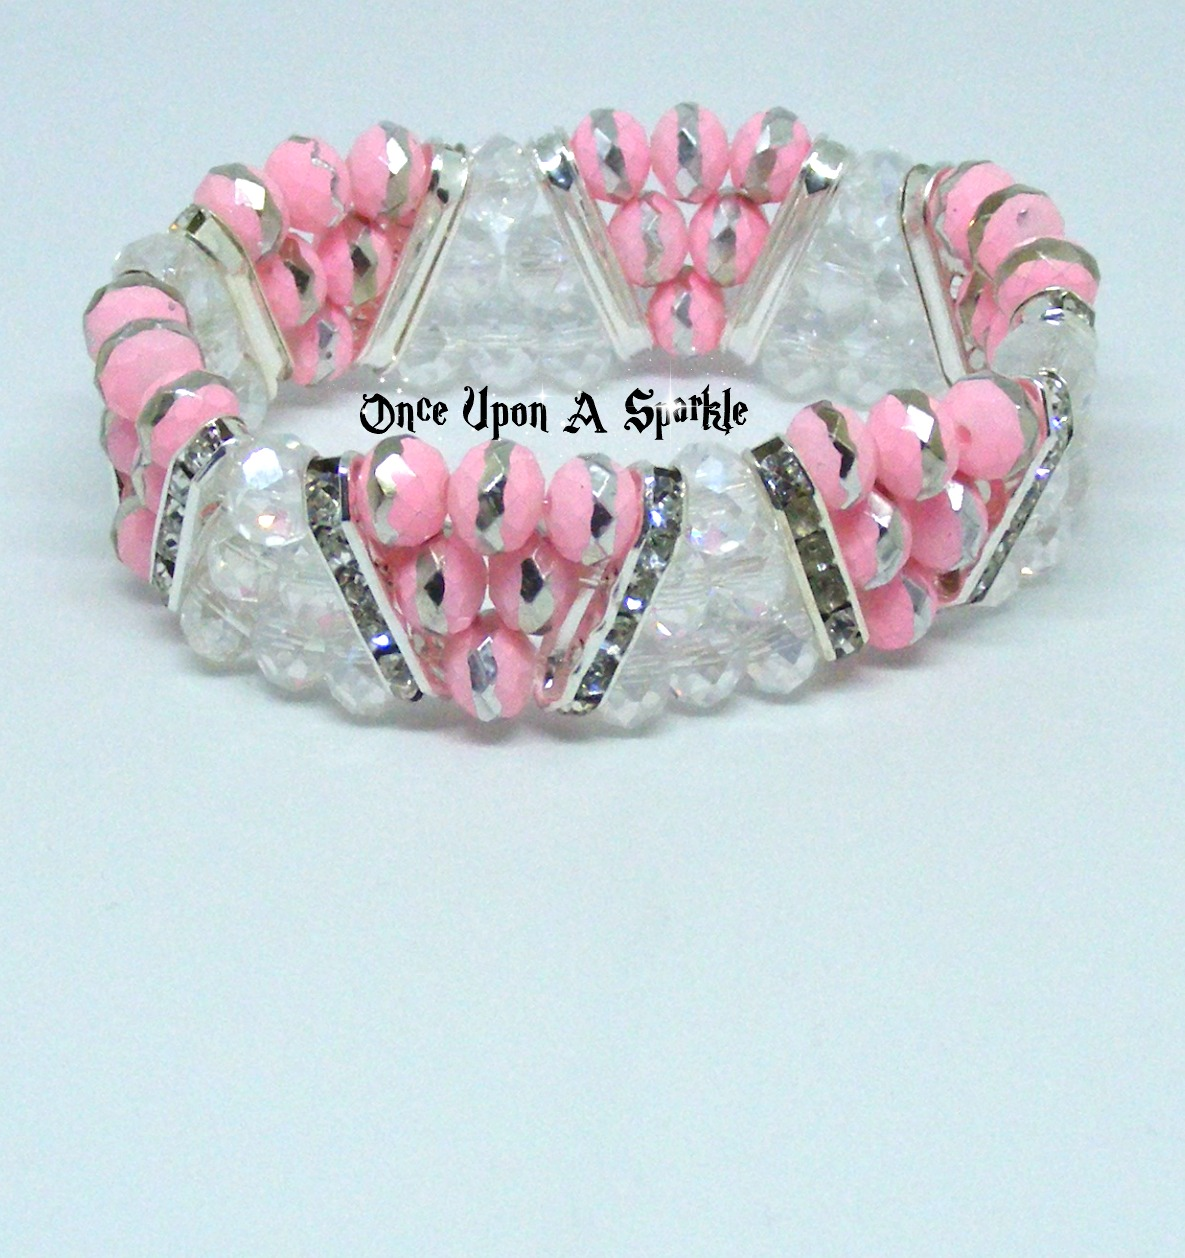 Bracelet stretch triangle pale pink with clear